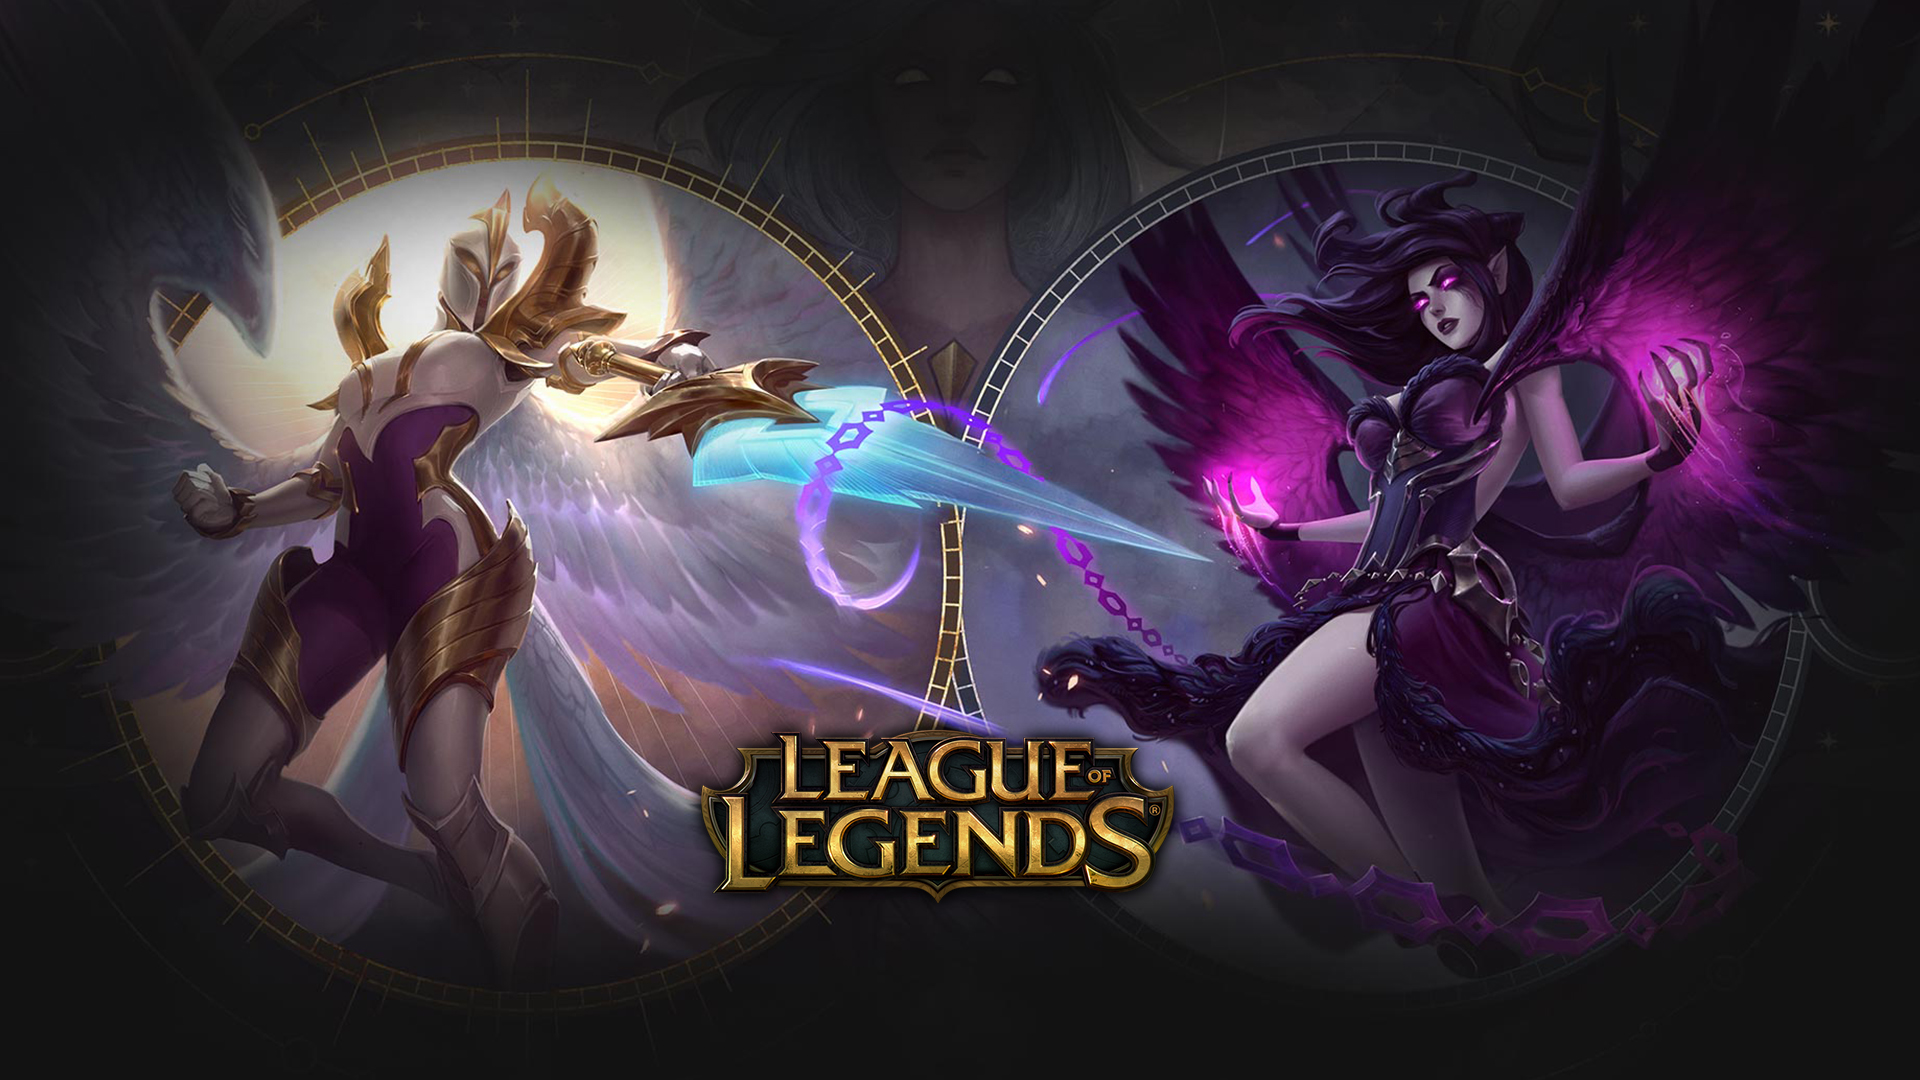 22.00 - Start League of Legends